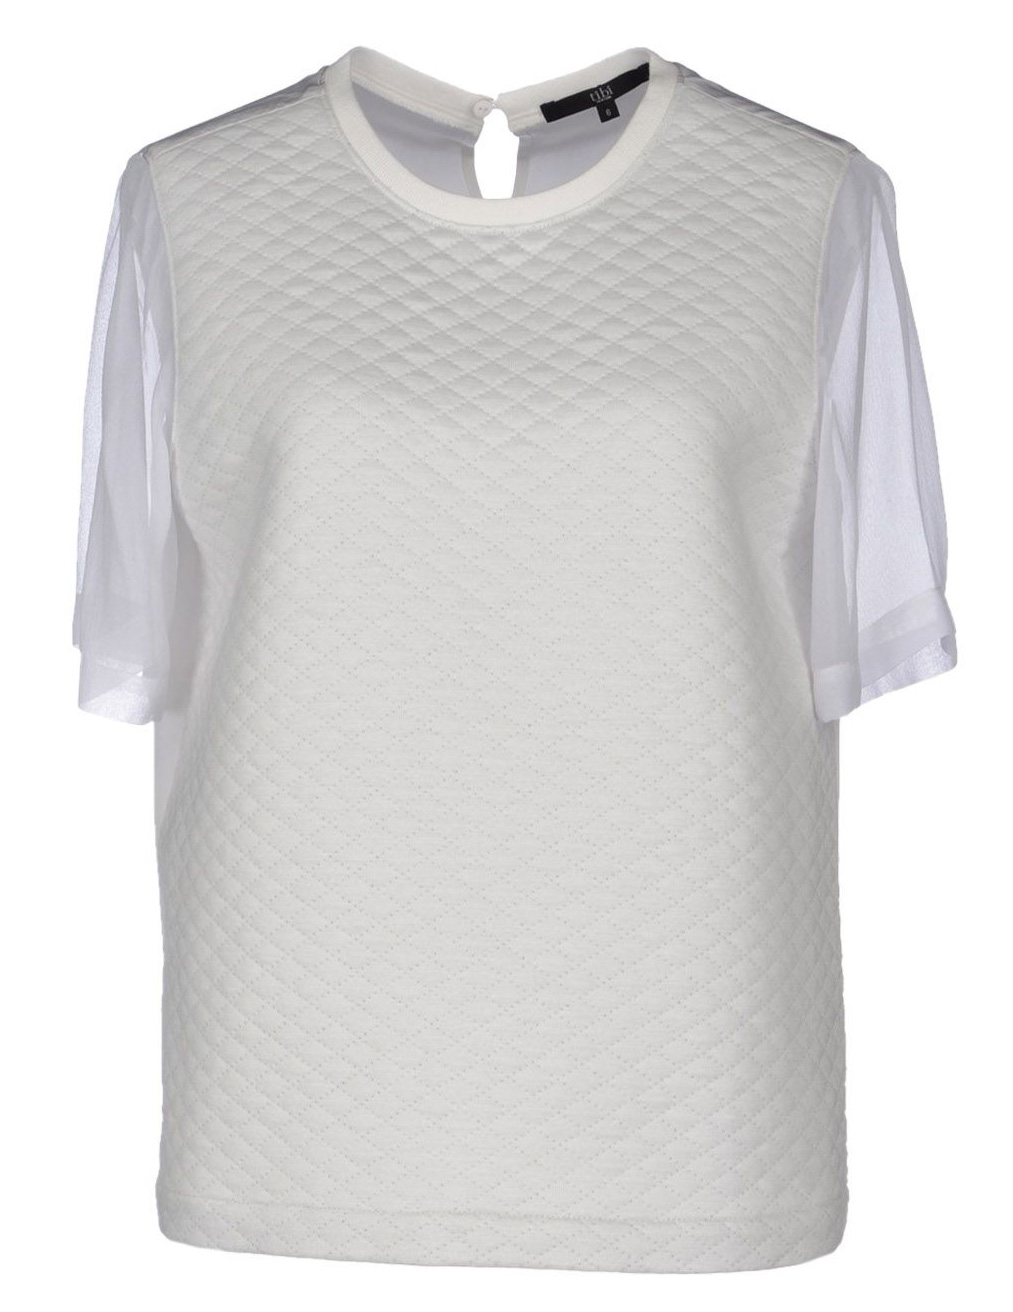 Tibi Quilted Blouse